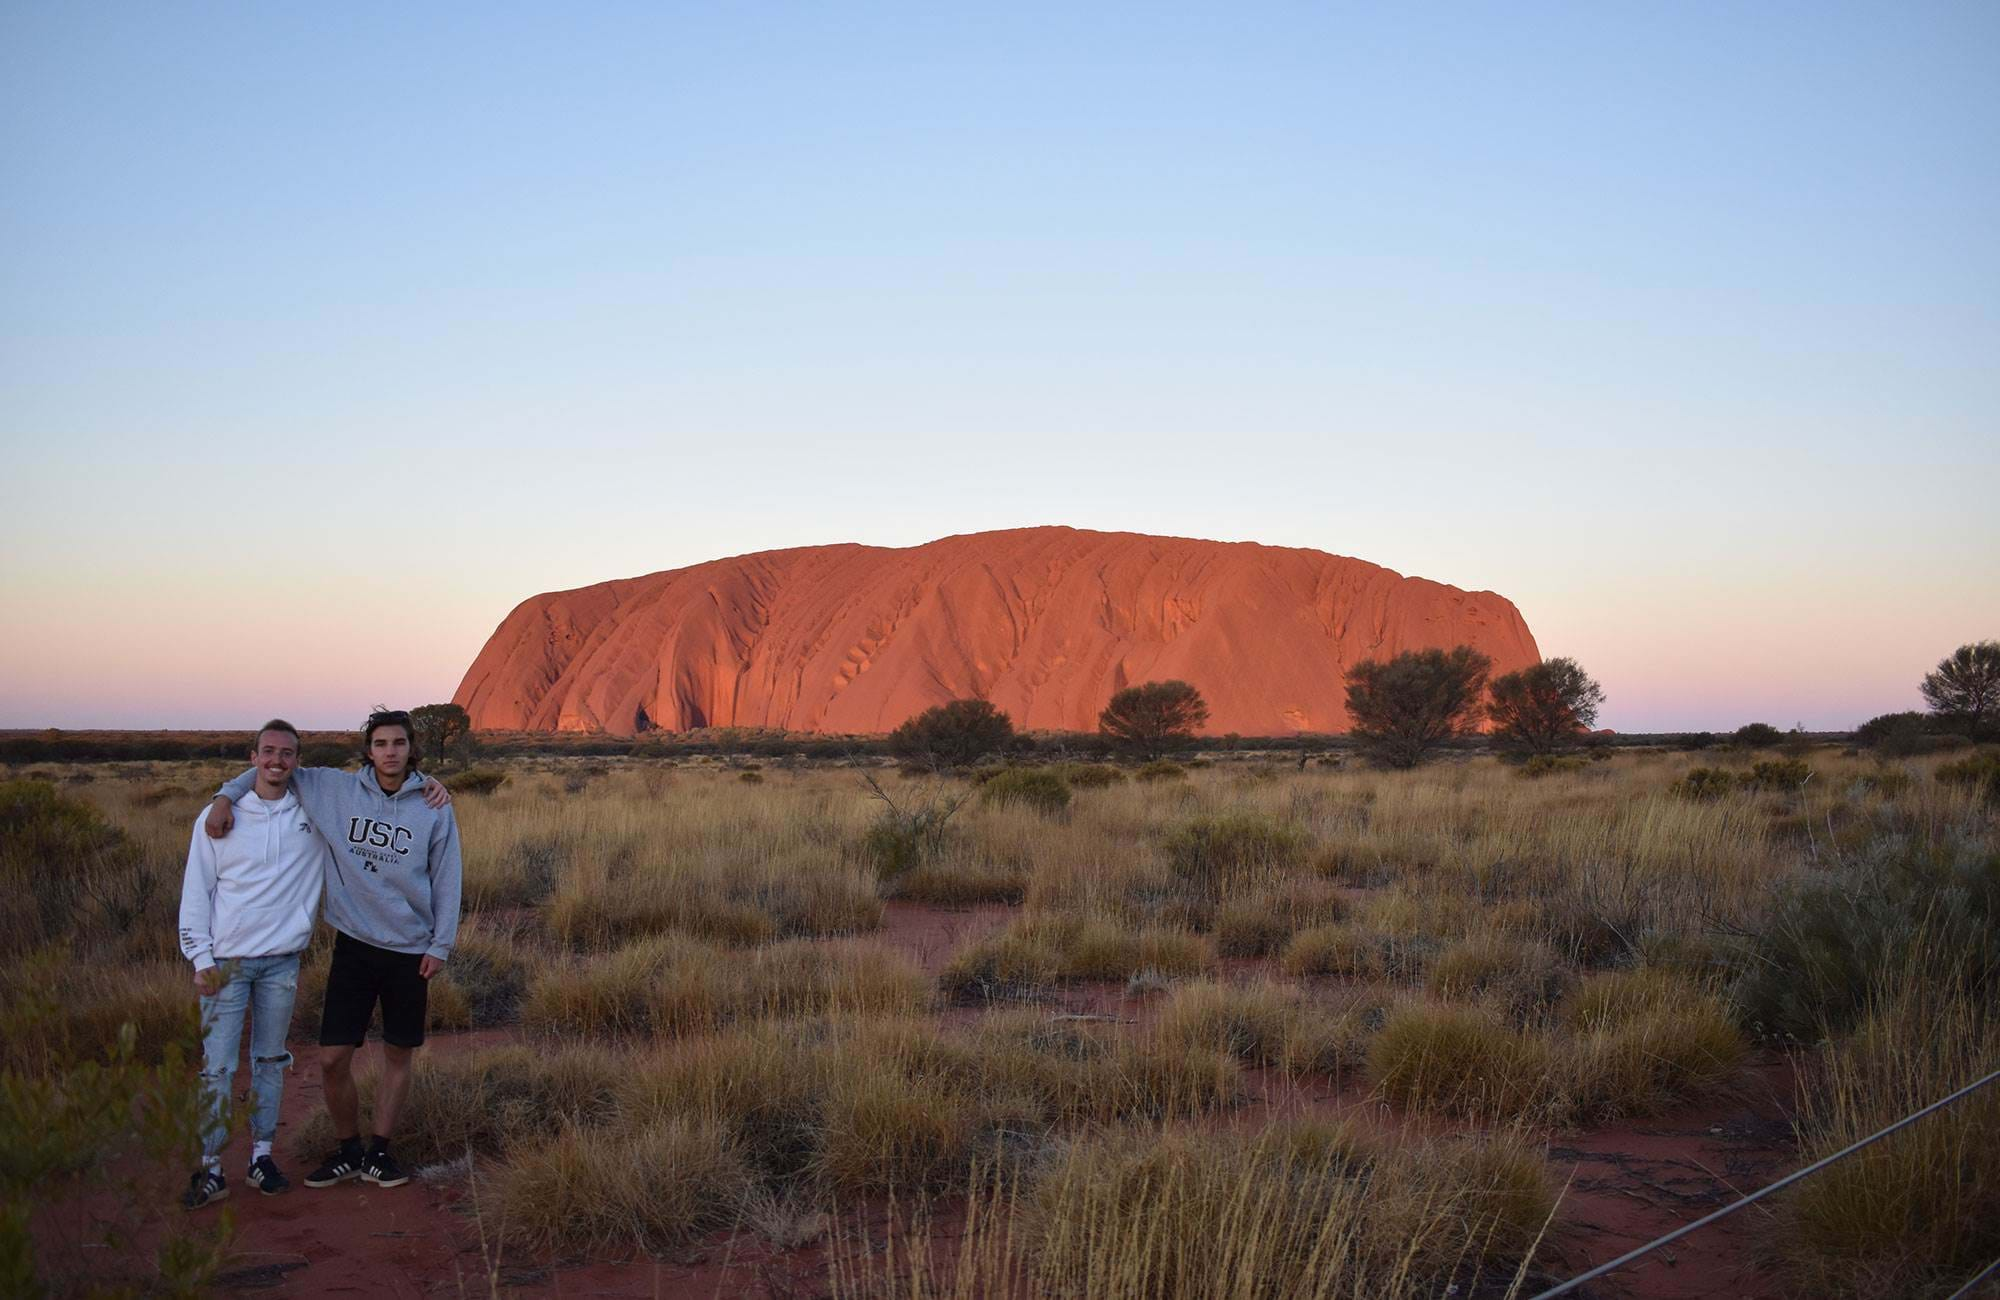 oliver and friend at uluru, ayers rock in australia